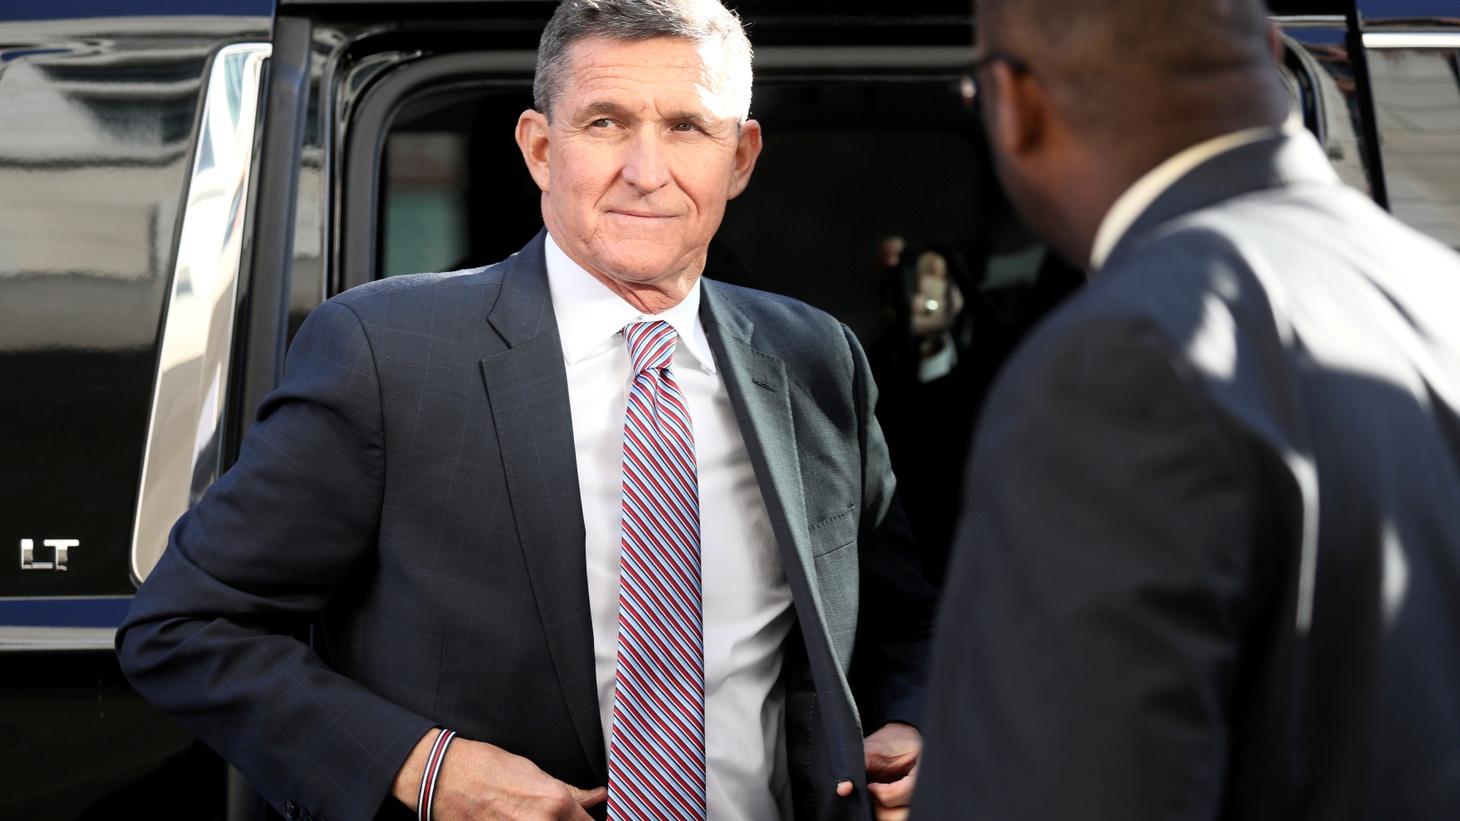 Former national security adviser Michael Flynn exits a vehicle as he arrives for his sentencing hearing at U.S. District Court in Washington, U.S., December 18, 2018.